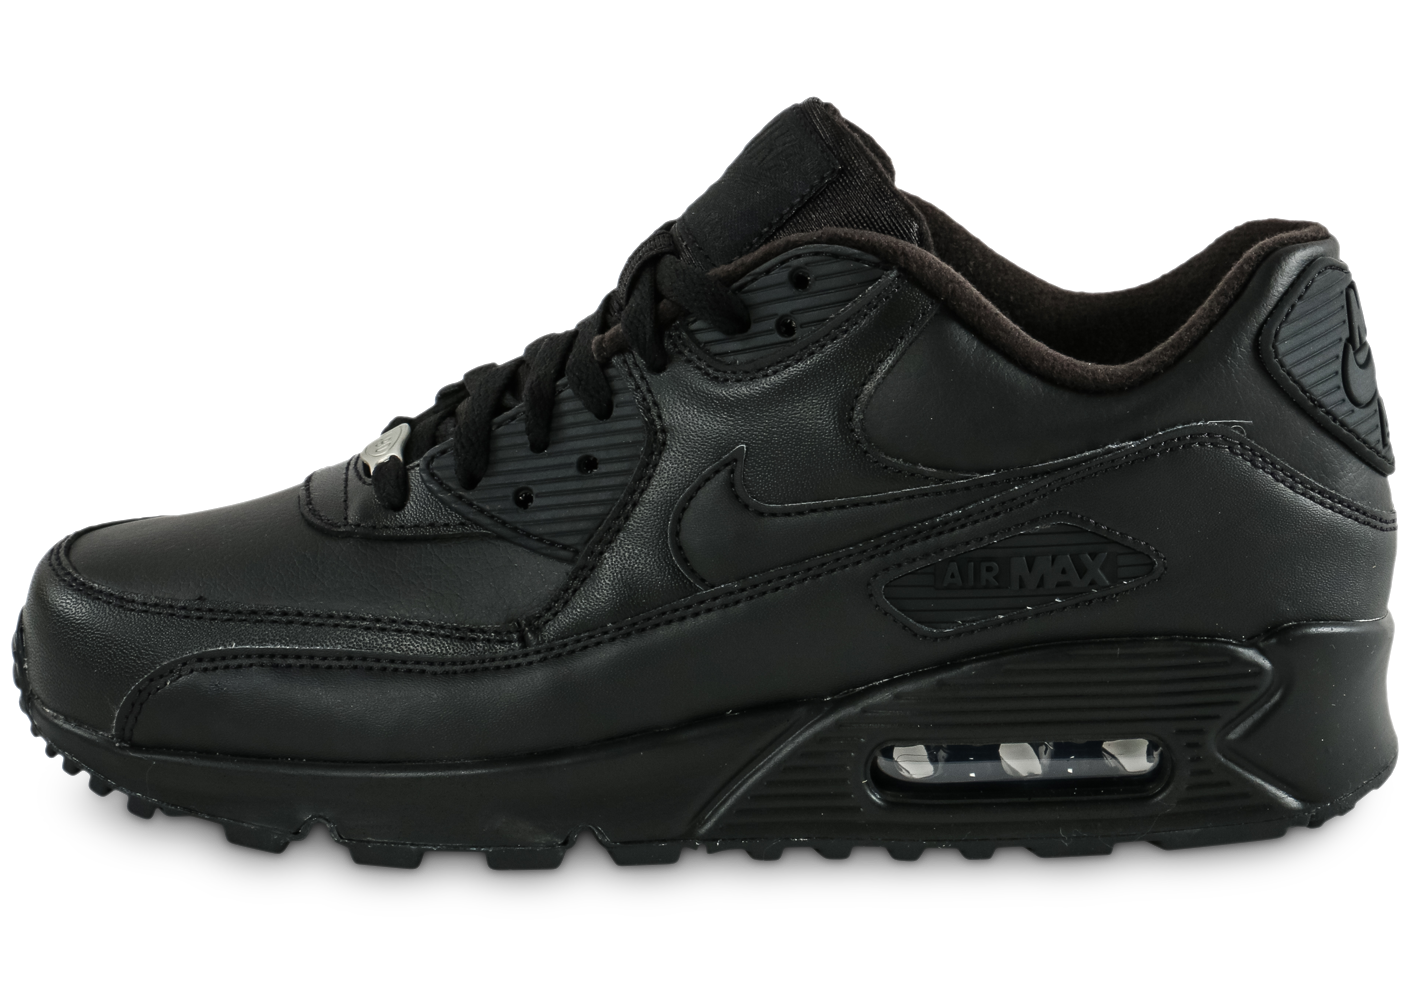 huge selection of 71752 eae5a Nike homme air max 90 leather noire baskets